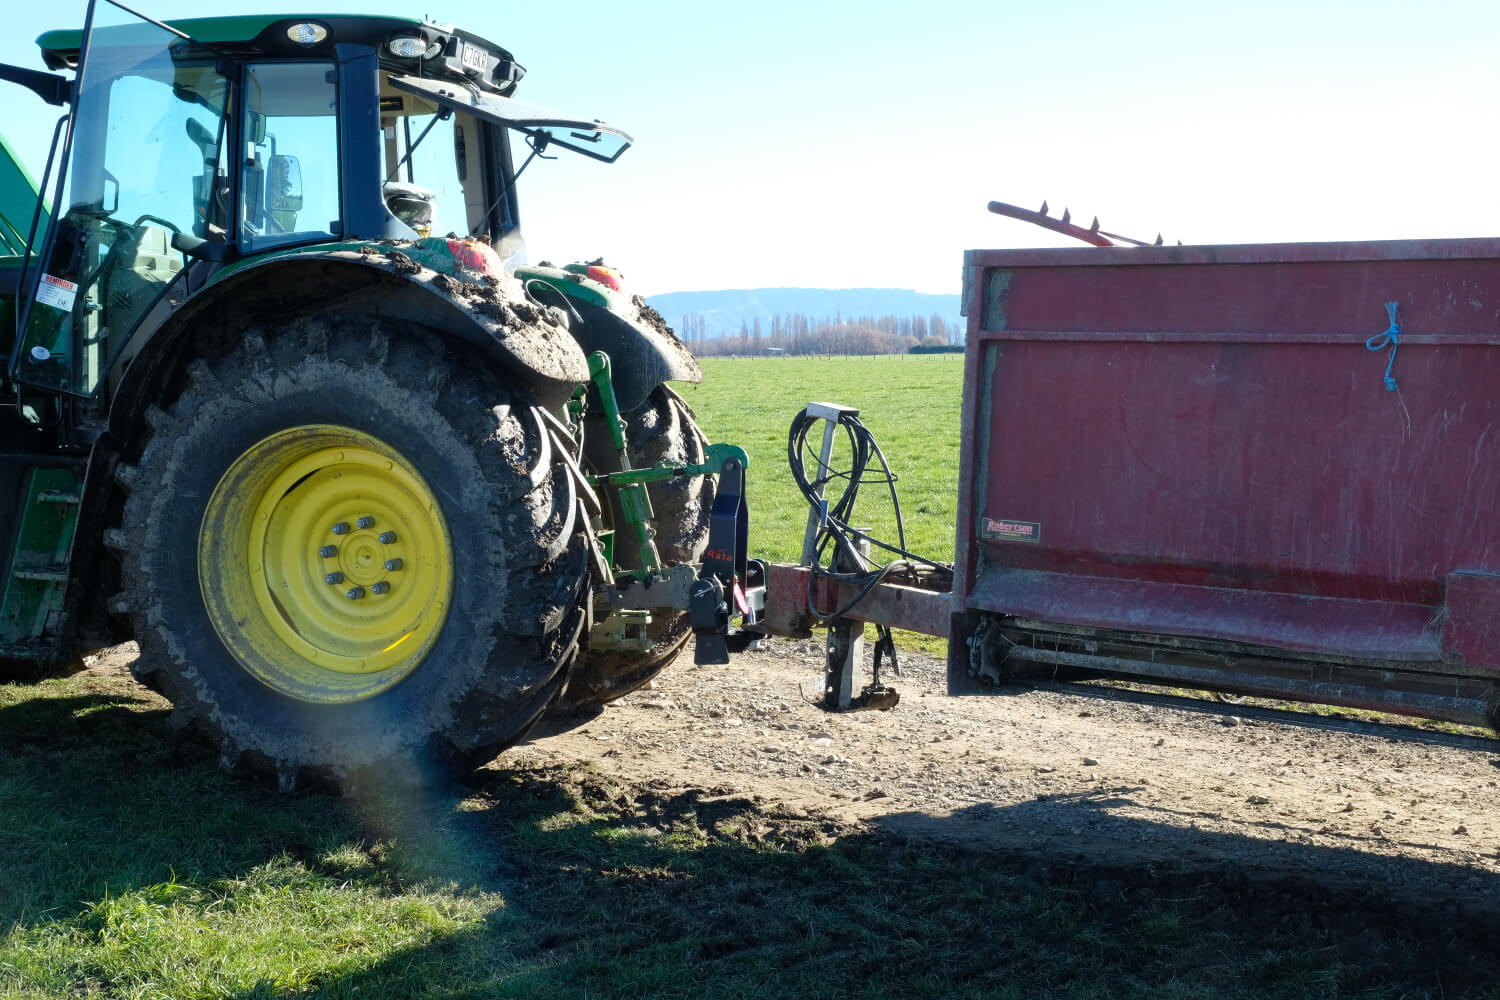 2021 3PLDH2 on Tractor (4)